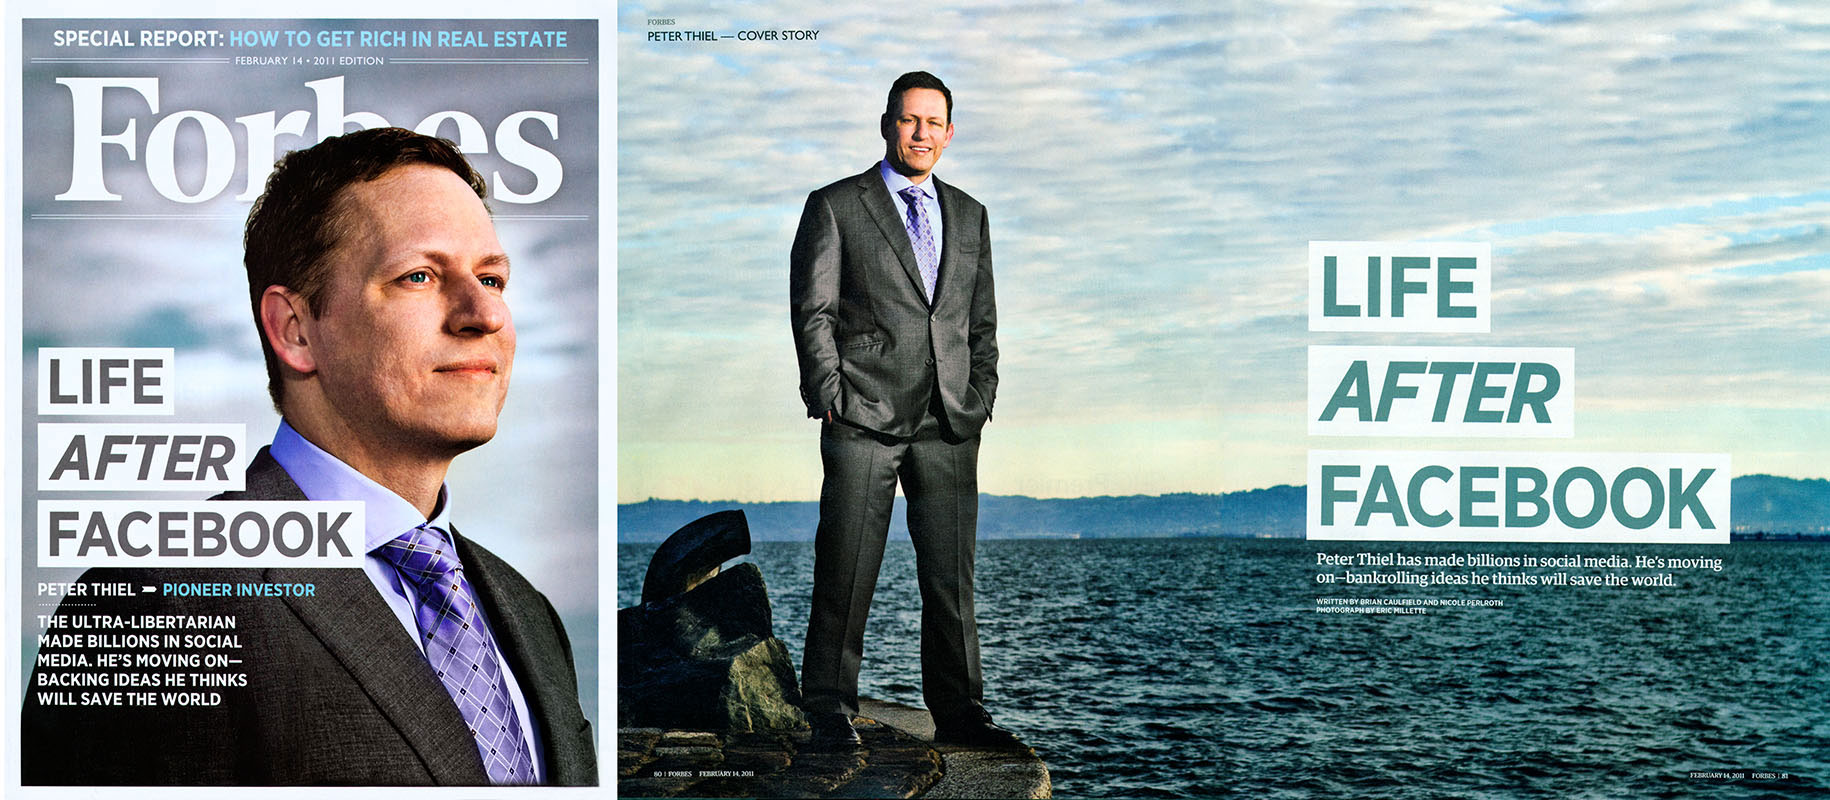 peter-thiel-Forbes-cover-story.jpg